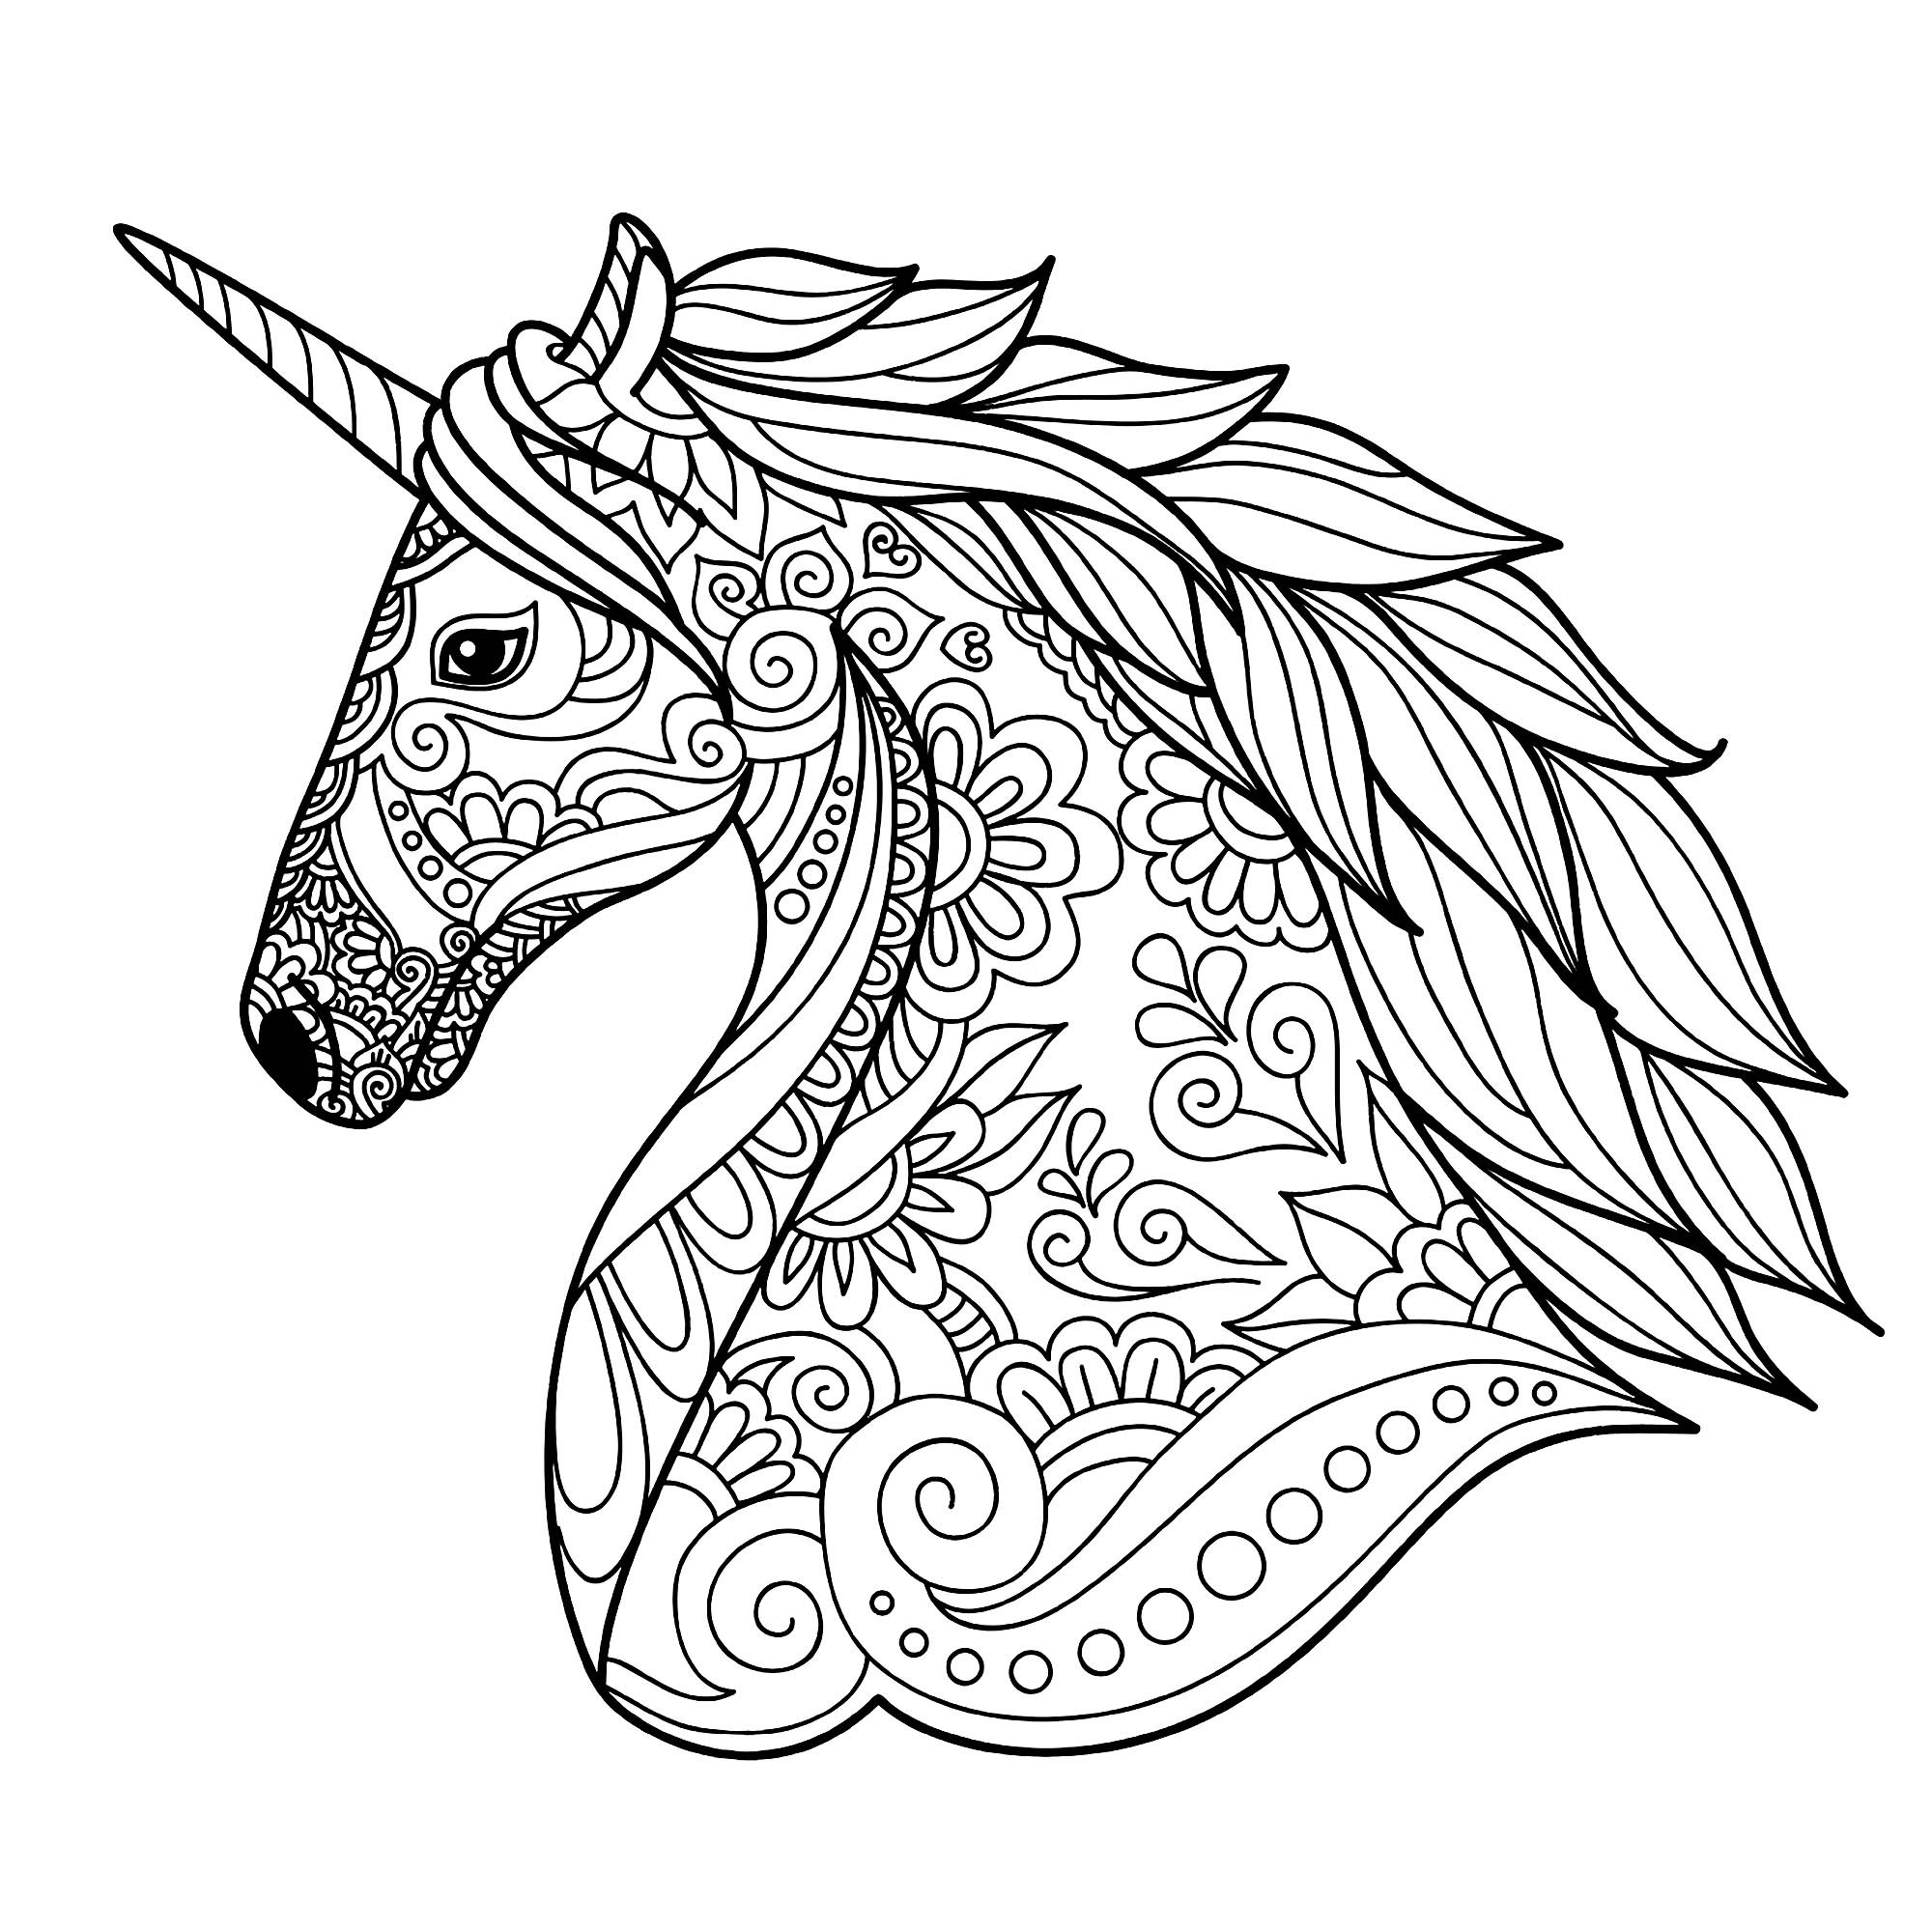 Unicorn Coloring Pages For Kids  Unicorns free to color for children Unicorns Kids